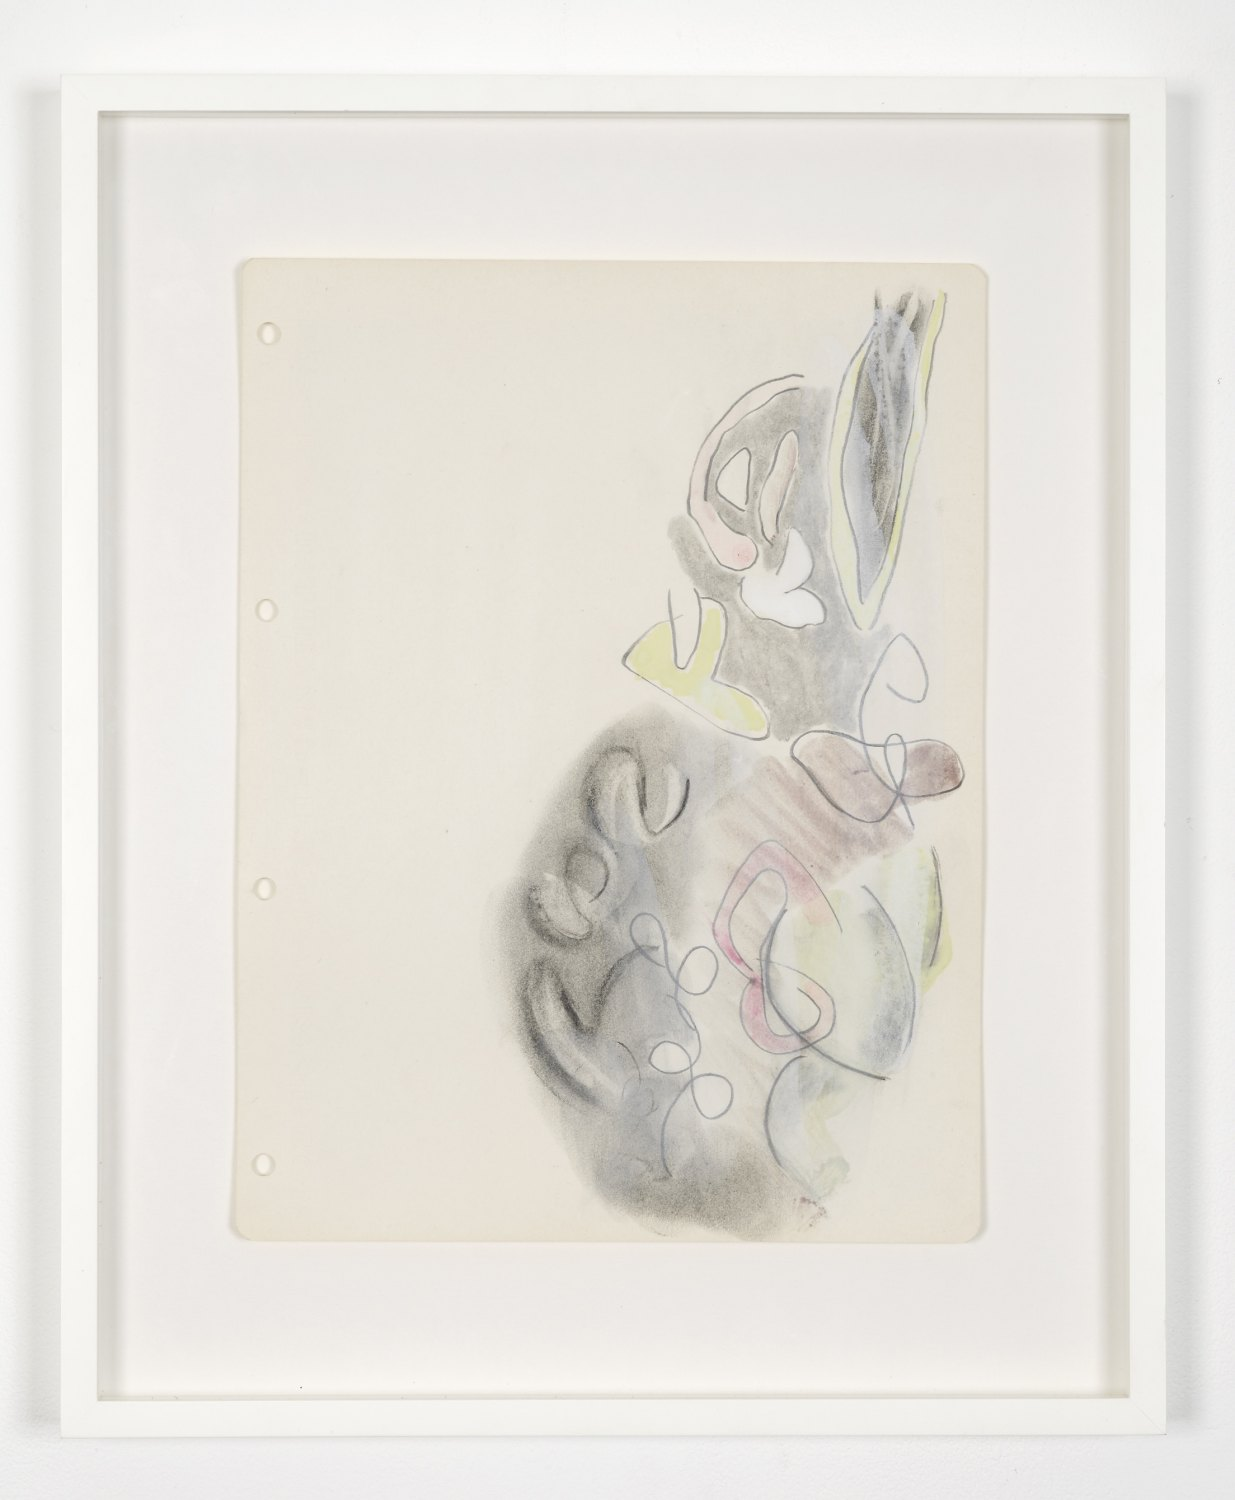 Marc Camille Chaimowicz From Series Three..., 1997 Pencil, ink, and gouache on paper, 60 × 47 cm